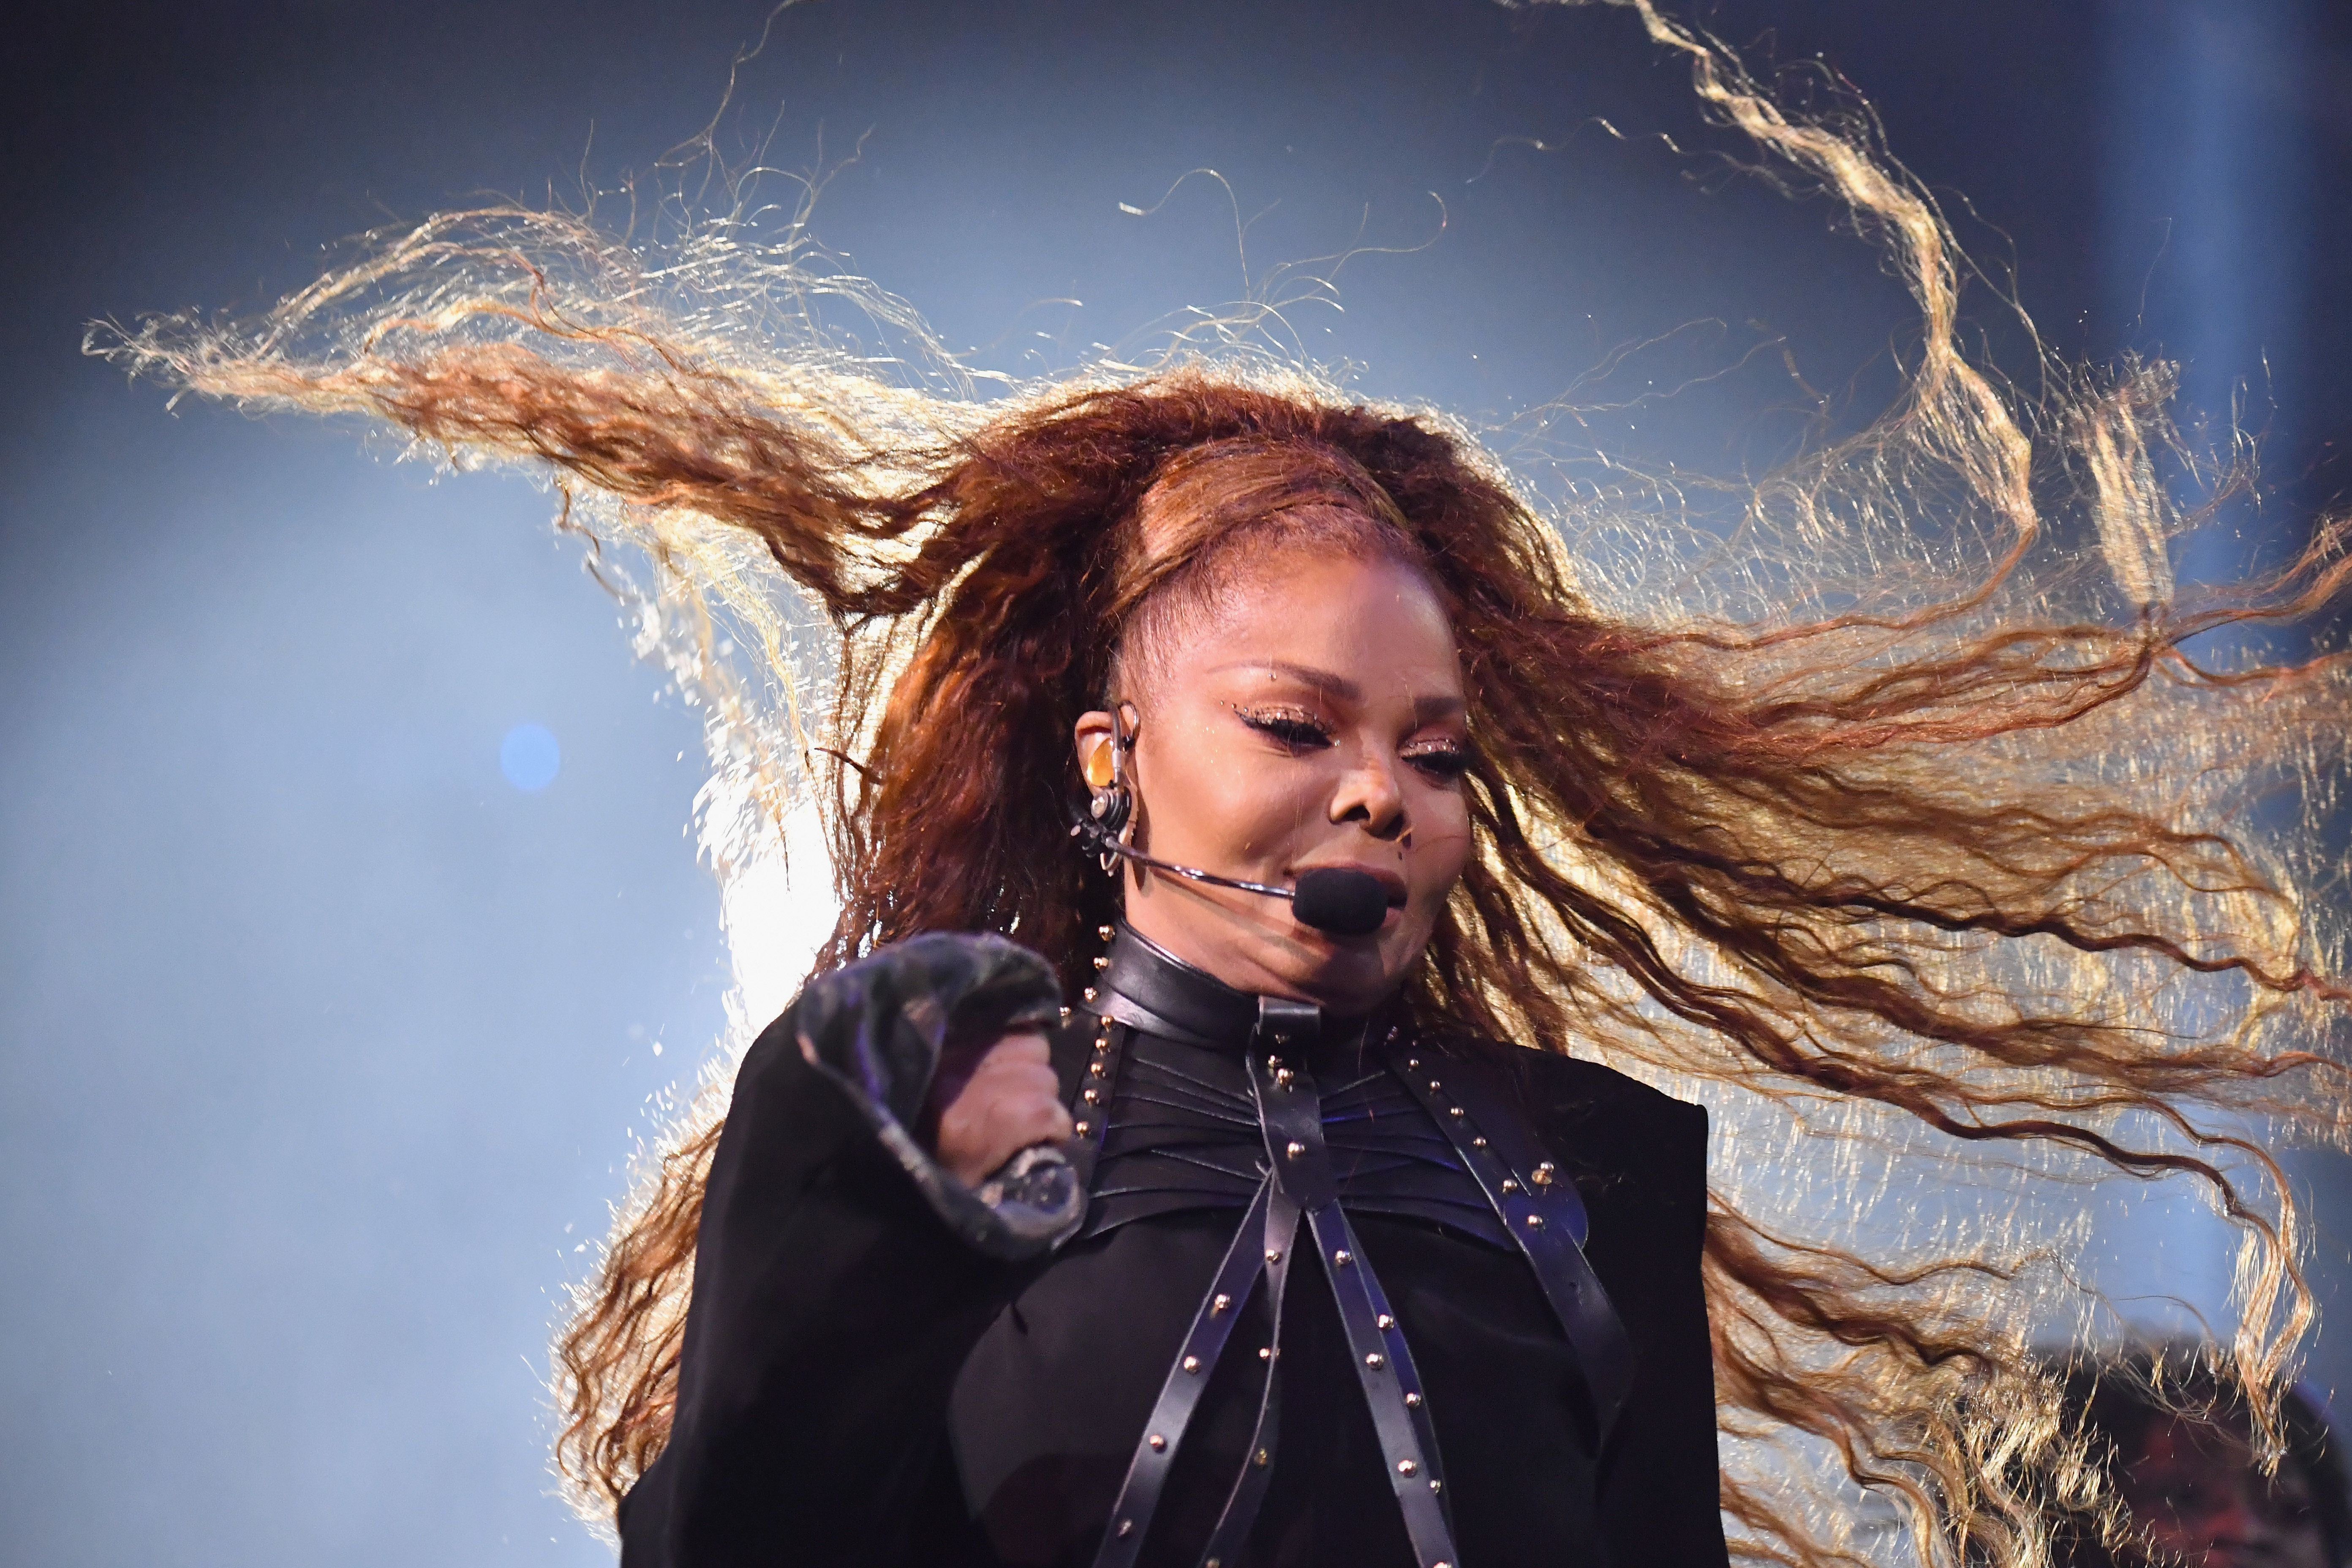 BILBAO, SPAIN - NOVEMBER 04:  Janet Jackson performs on stage during the MTV EMAs 2018 on November 4, 2018 in Bilbao, Spain.  (Photo by Jeff Kravitz/FilmMagic)